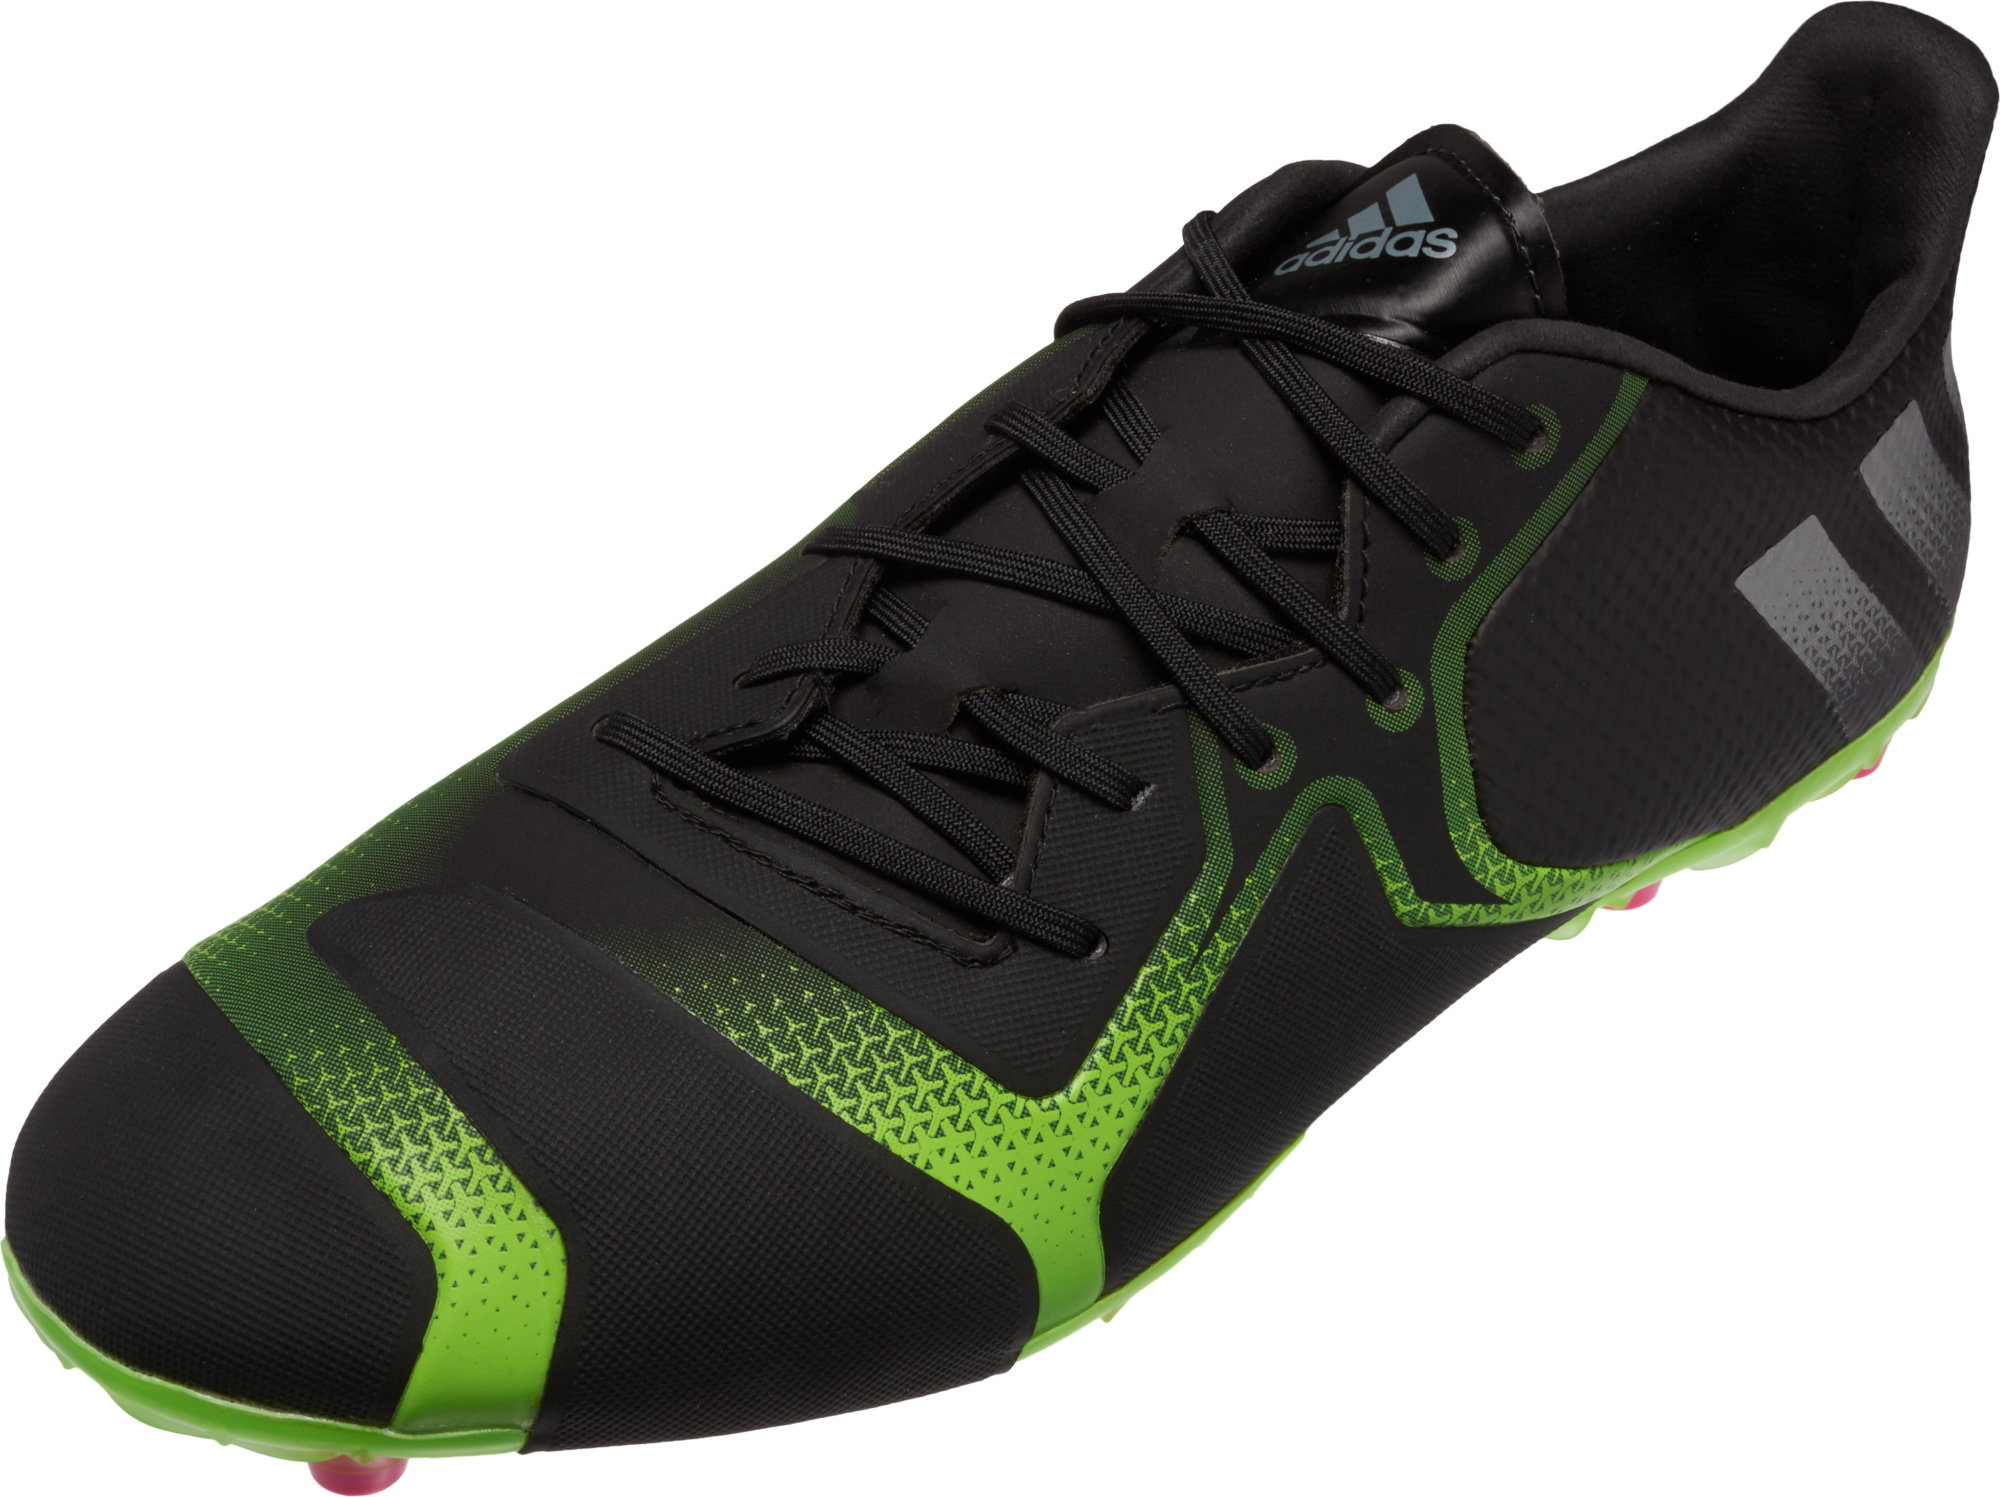 formación conveniencia Extremistas  adidas ACE 16 TKRZ Soccer Shoes - Green ACE 16 TKRZ Soccer Cleats